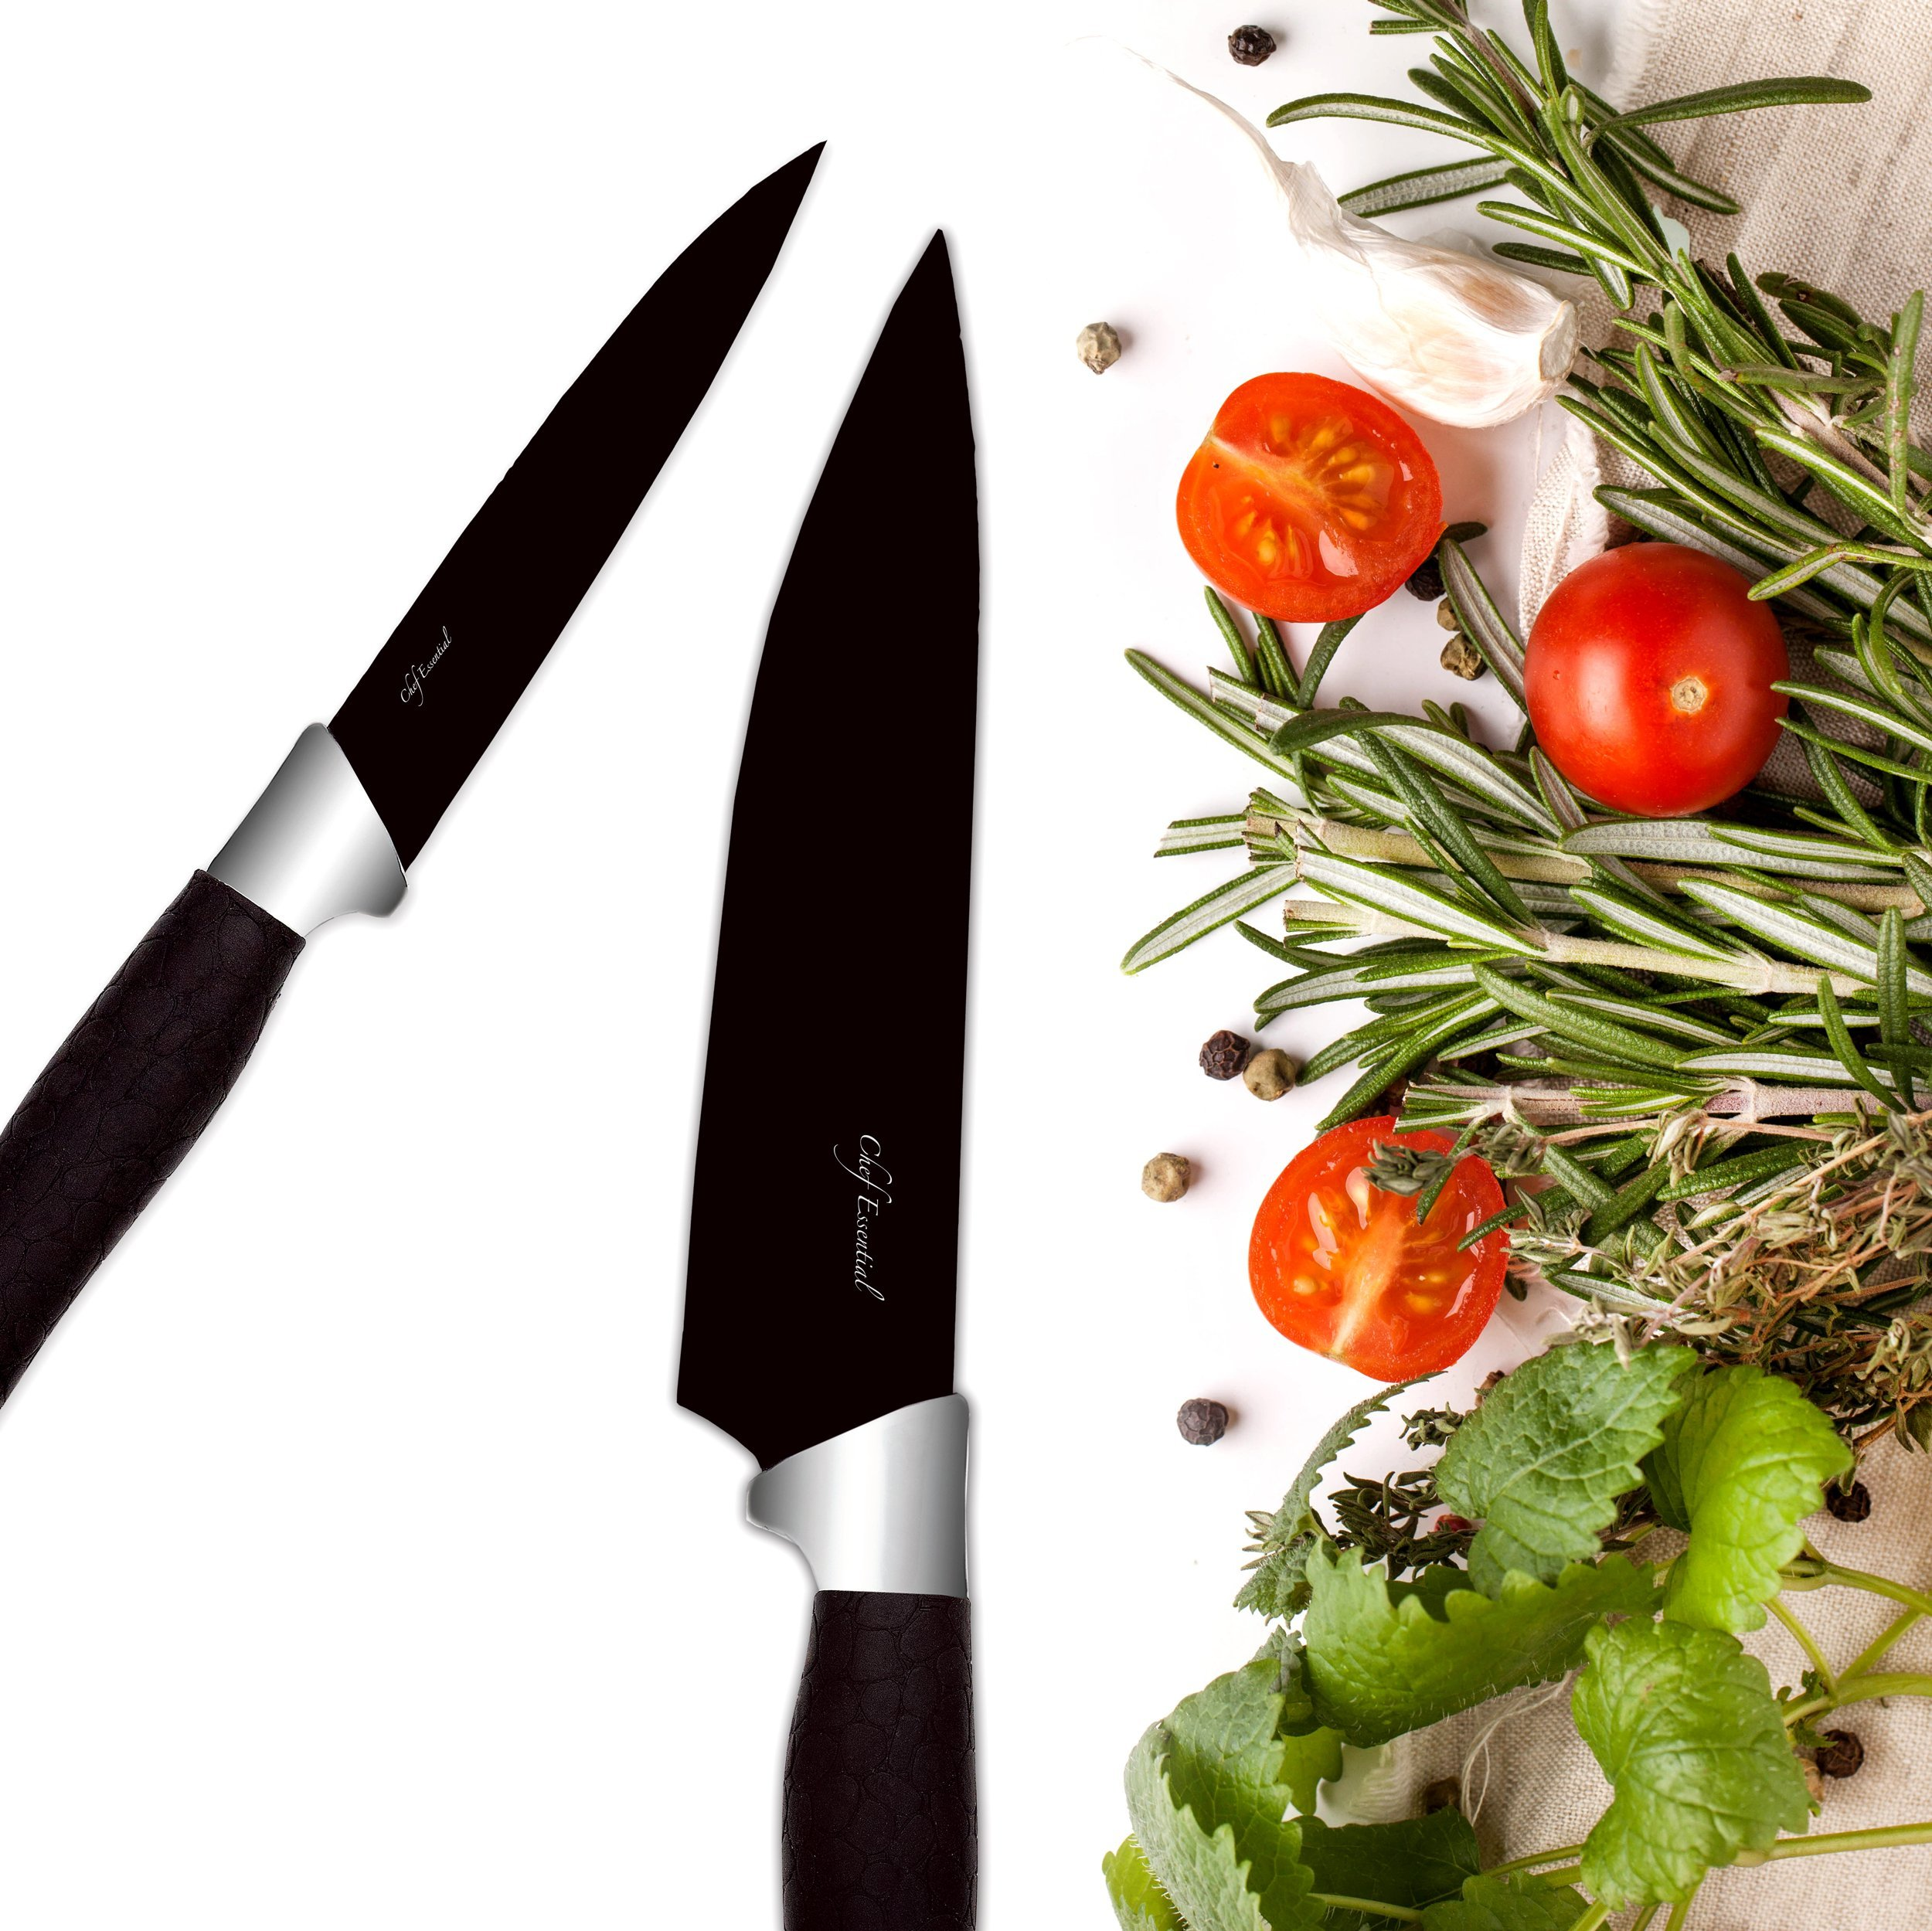 Chef Essential 7 Piece Knife Block Set, NEC Series, Black by Chef Essential (Image #5)